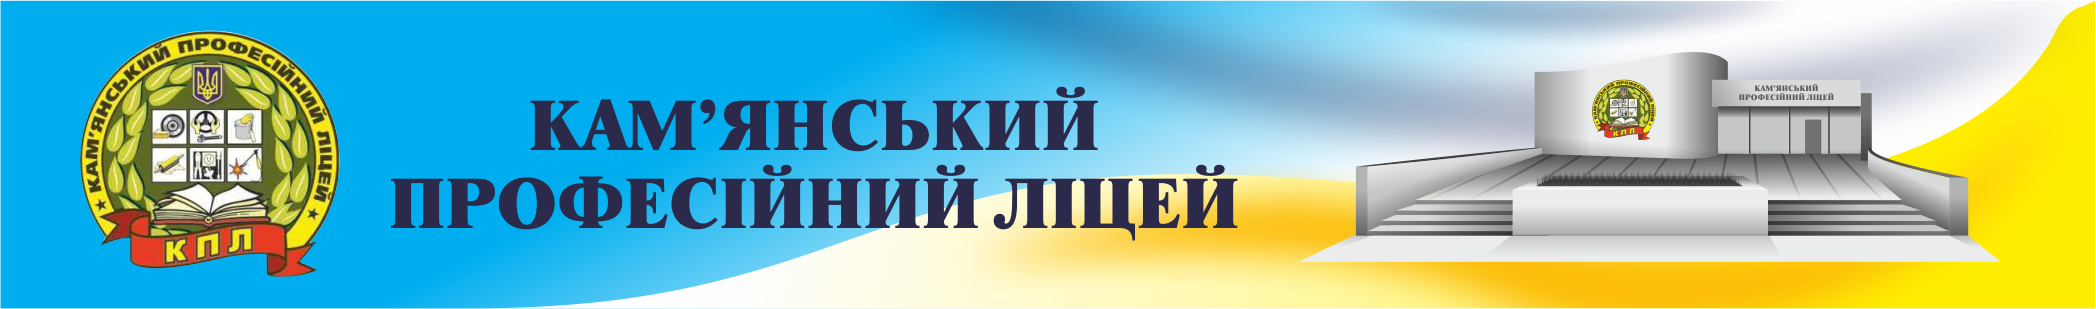 C:\Documents and Settings\user\Рабочий стол\site-logo2.png